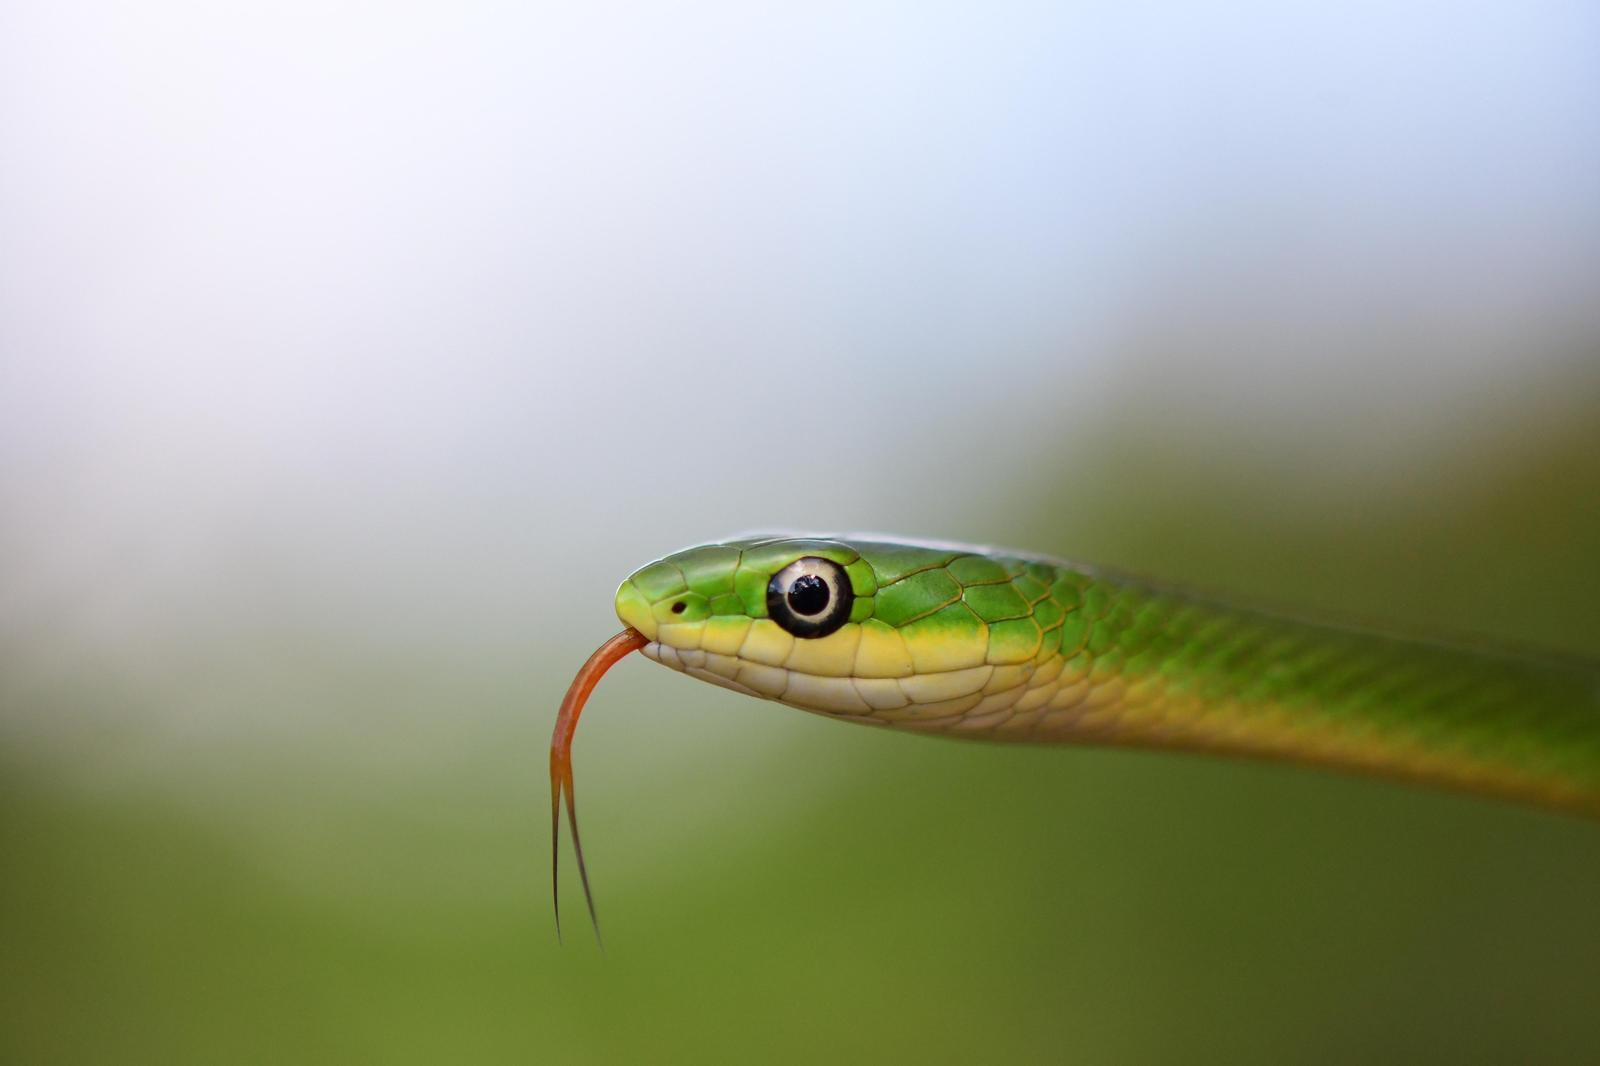 Rough Green Snake Photo by Jacob Zadik